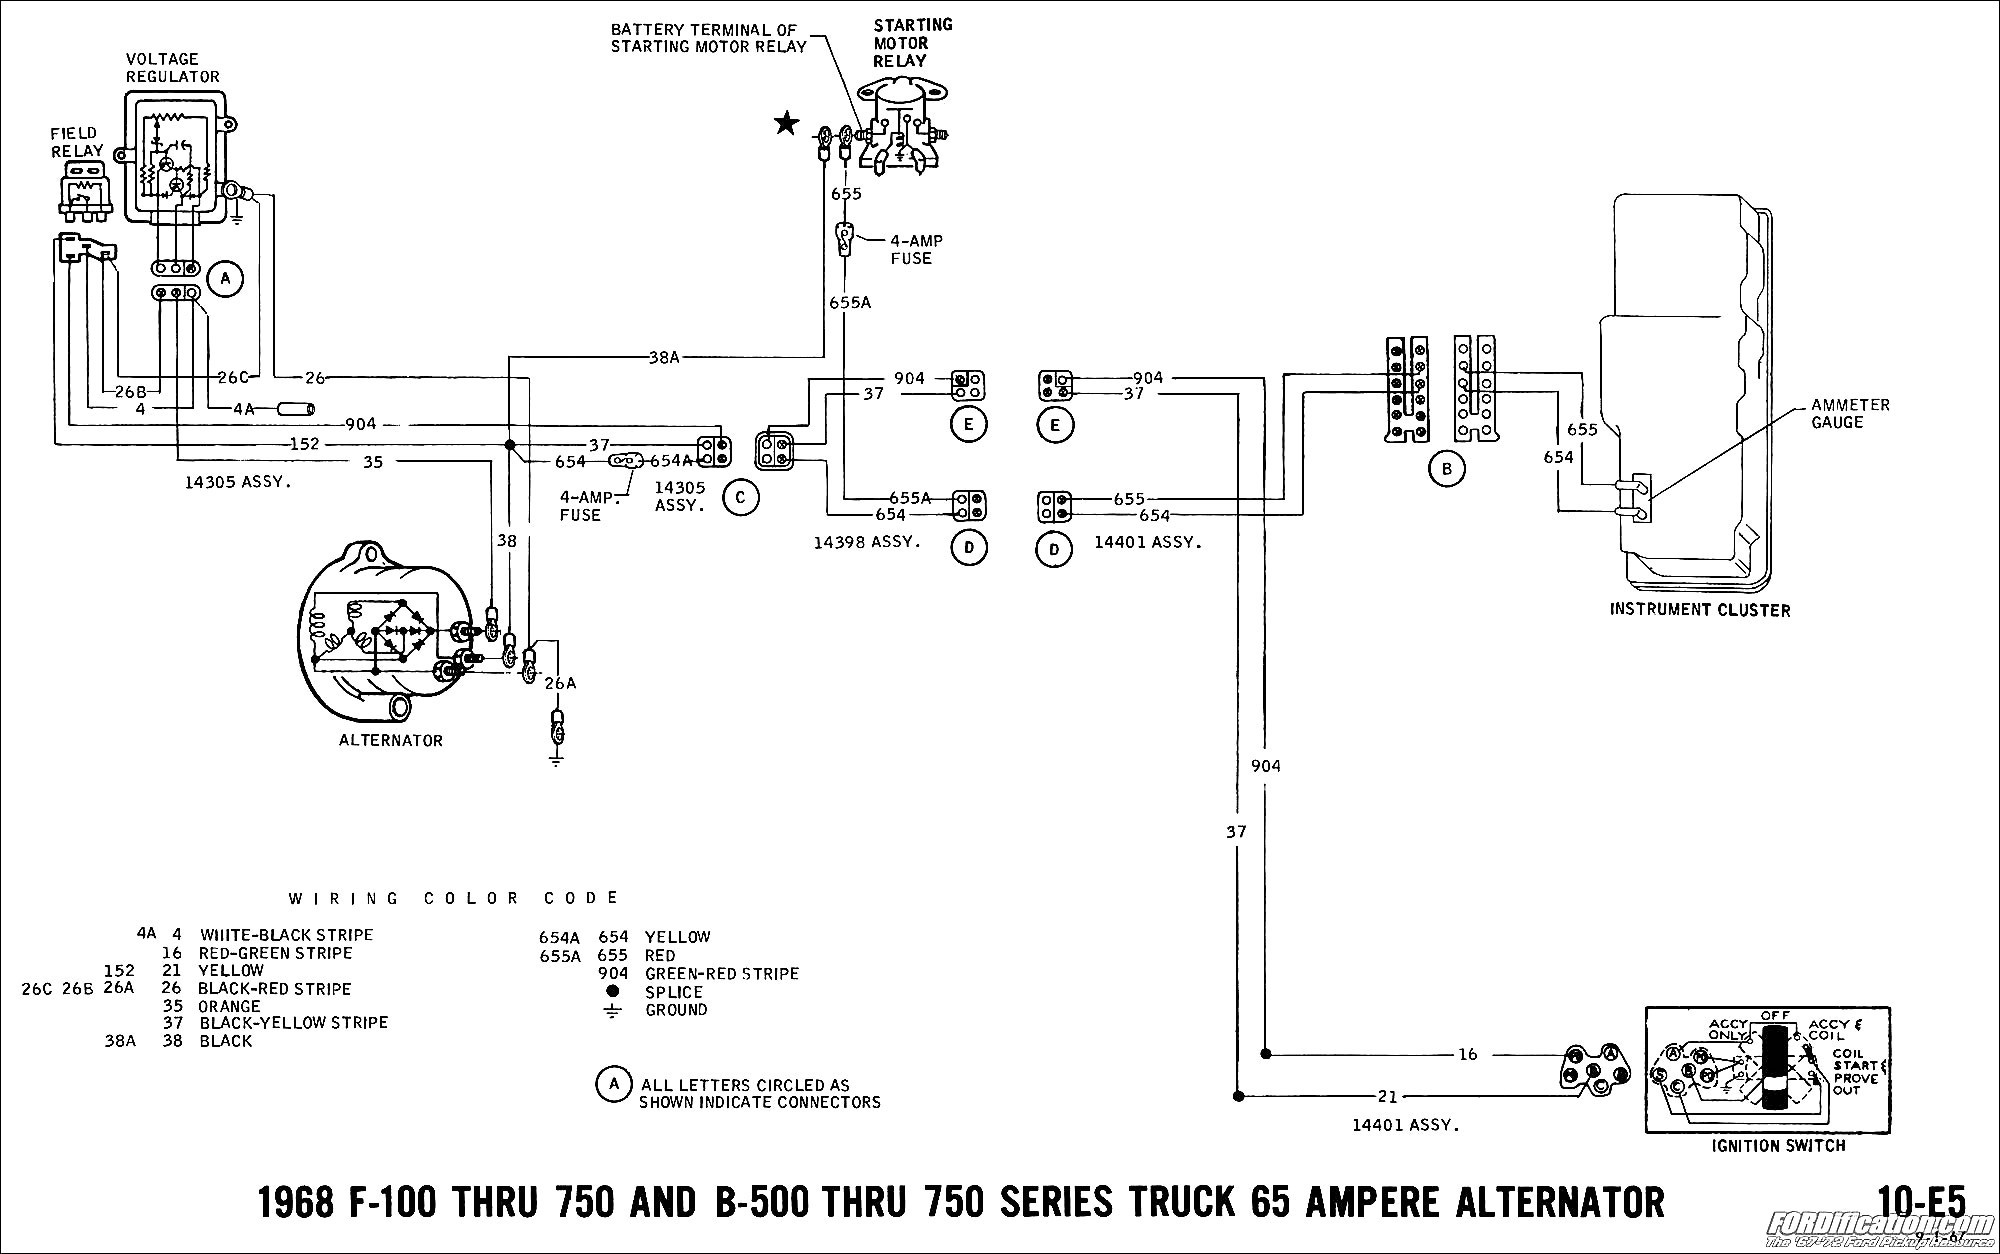 Ford Tractor 6610 Alternator Wiring Diagram Starting Know About Ford 7740 Wiring  Diagram Ford 6610 Wiring Diagram